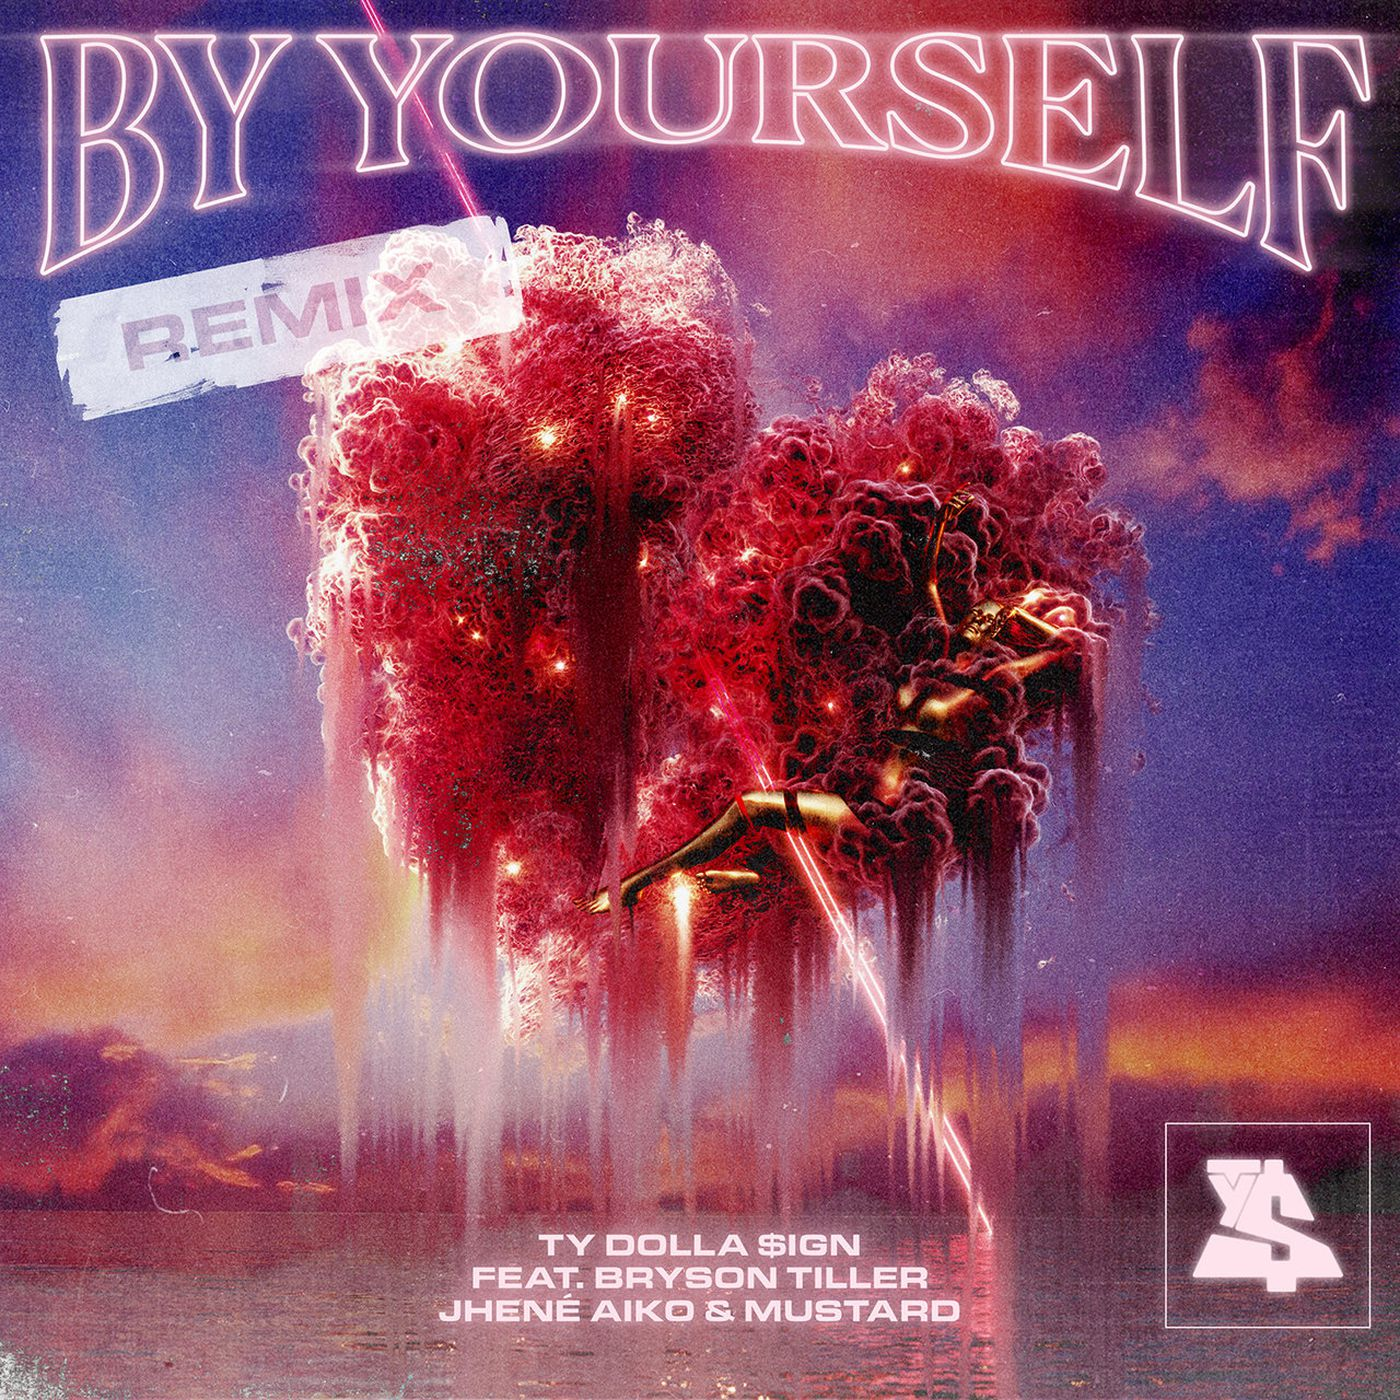 Ty Dolla $ign Ft. Bryson Tiller, Jhené Aiko & Mustard - By Yourself Mp3 Downlod